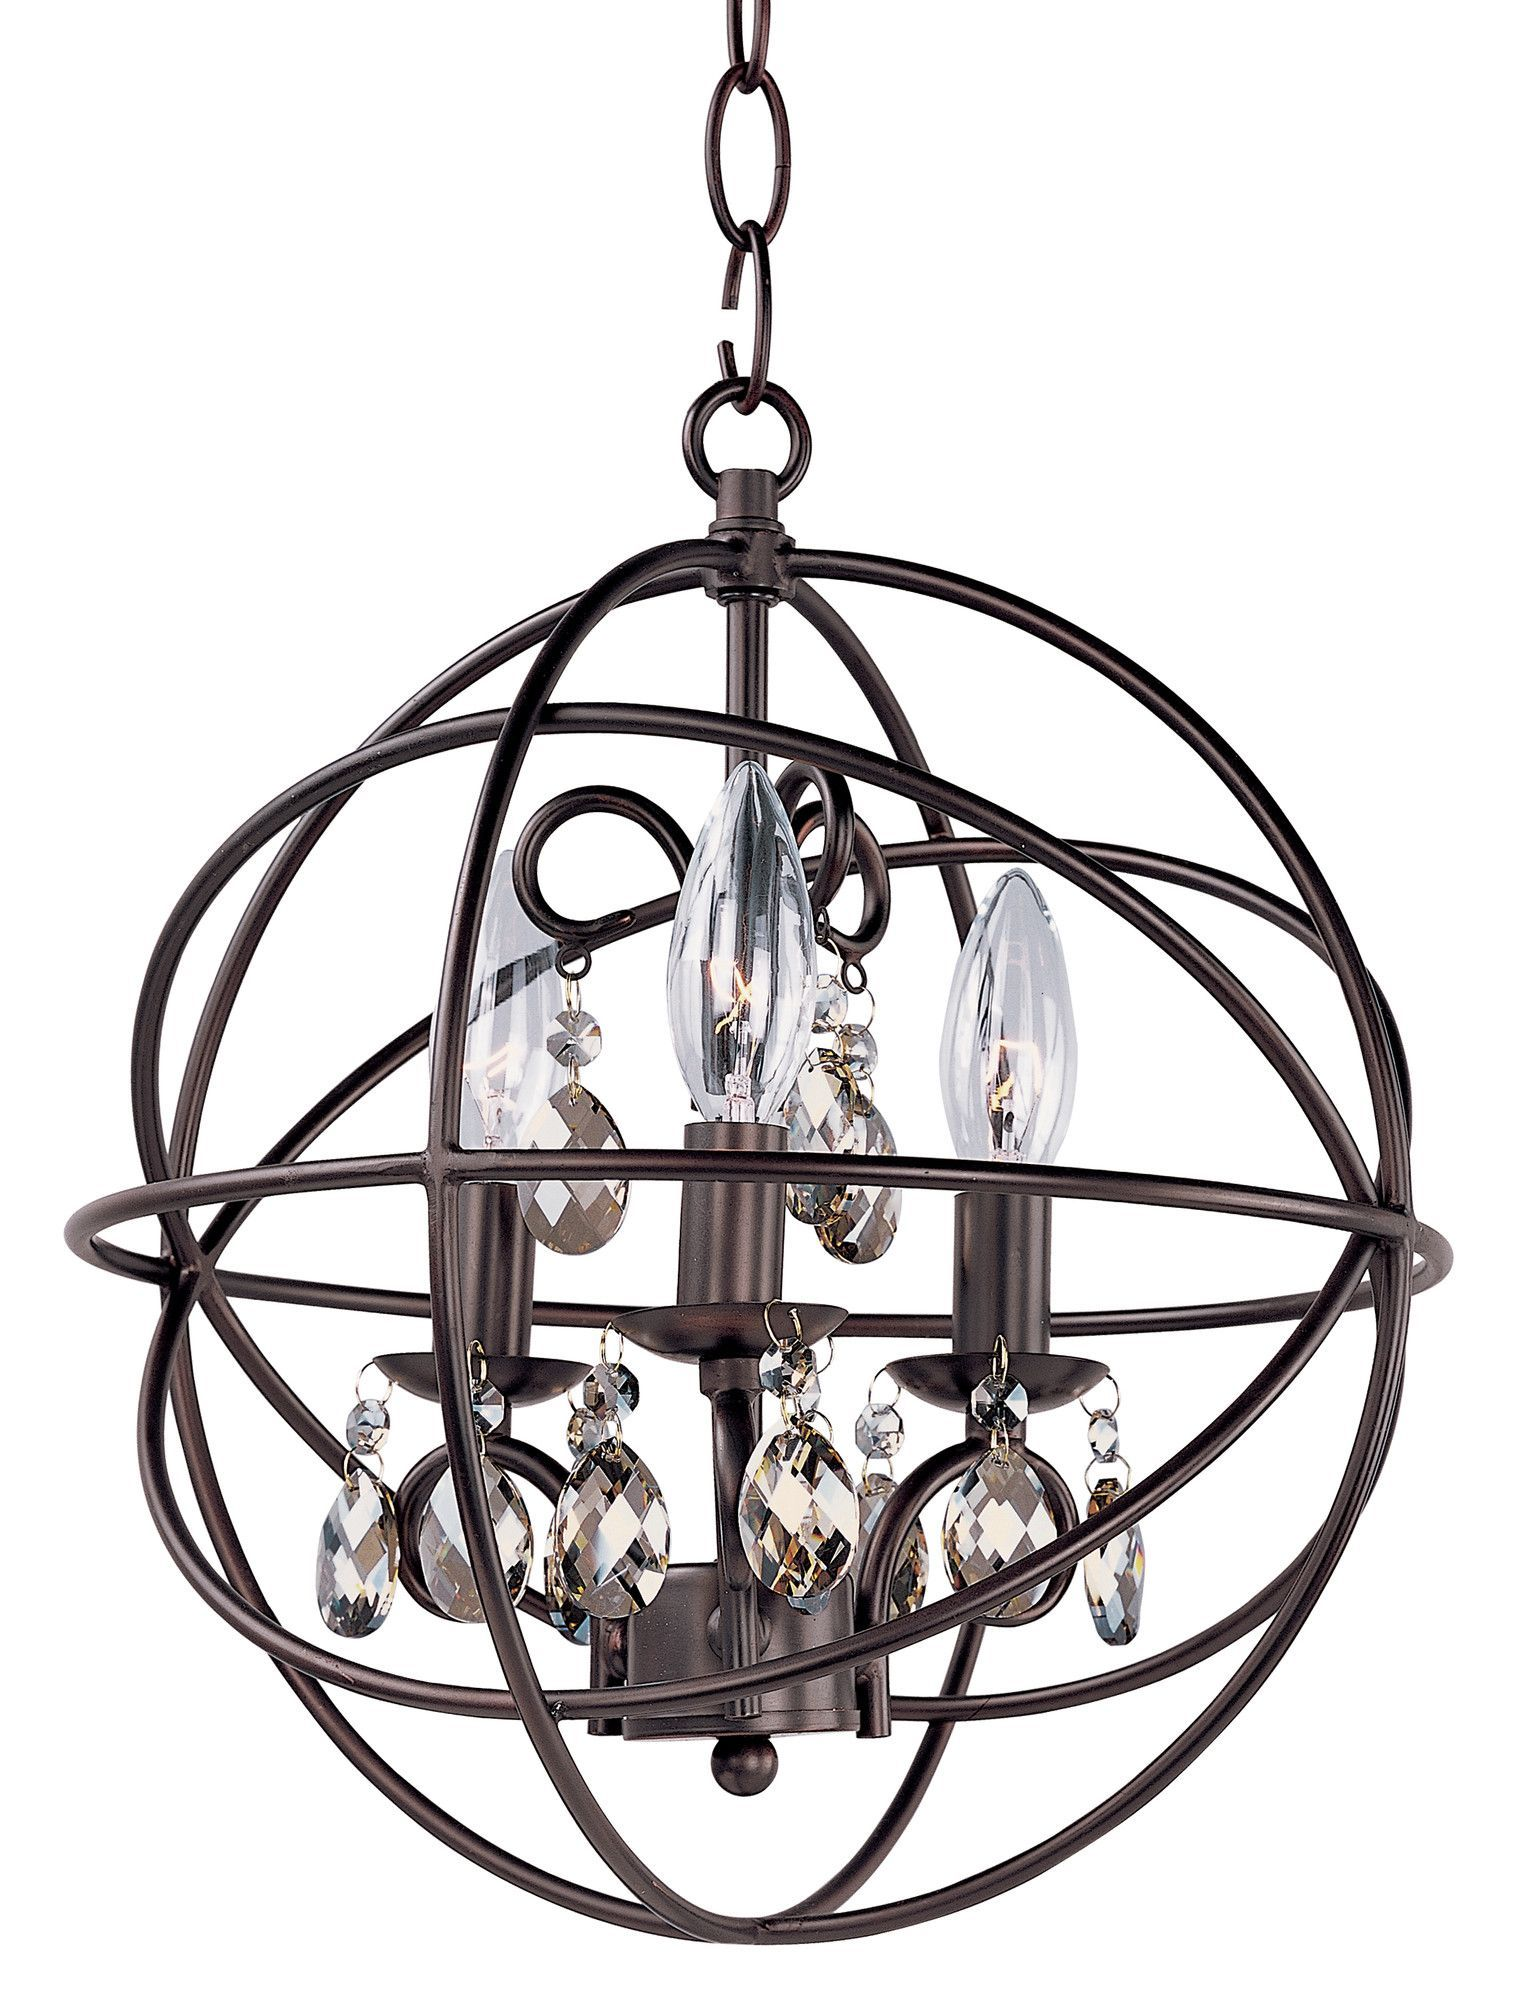 Shop Wayfair for Chandeliers to match every style and bud